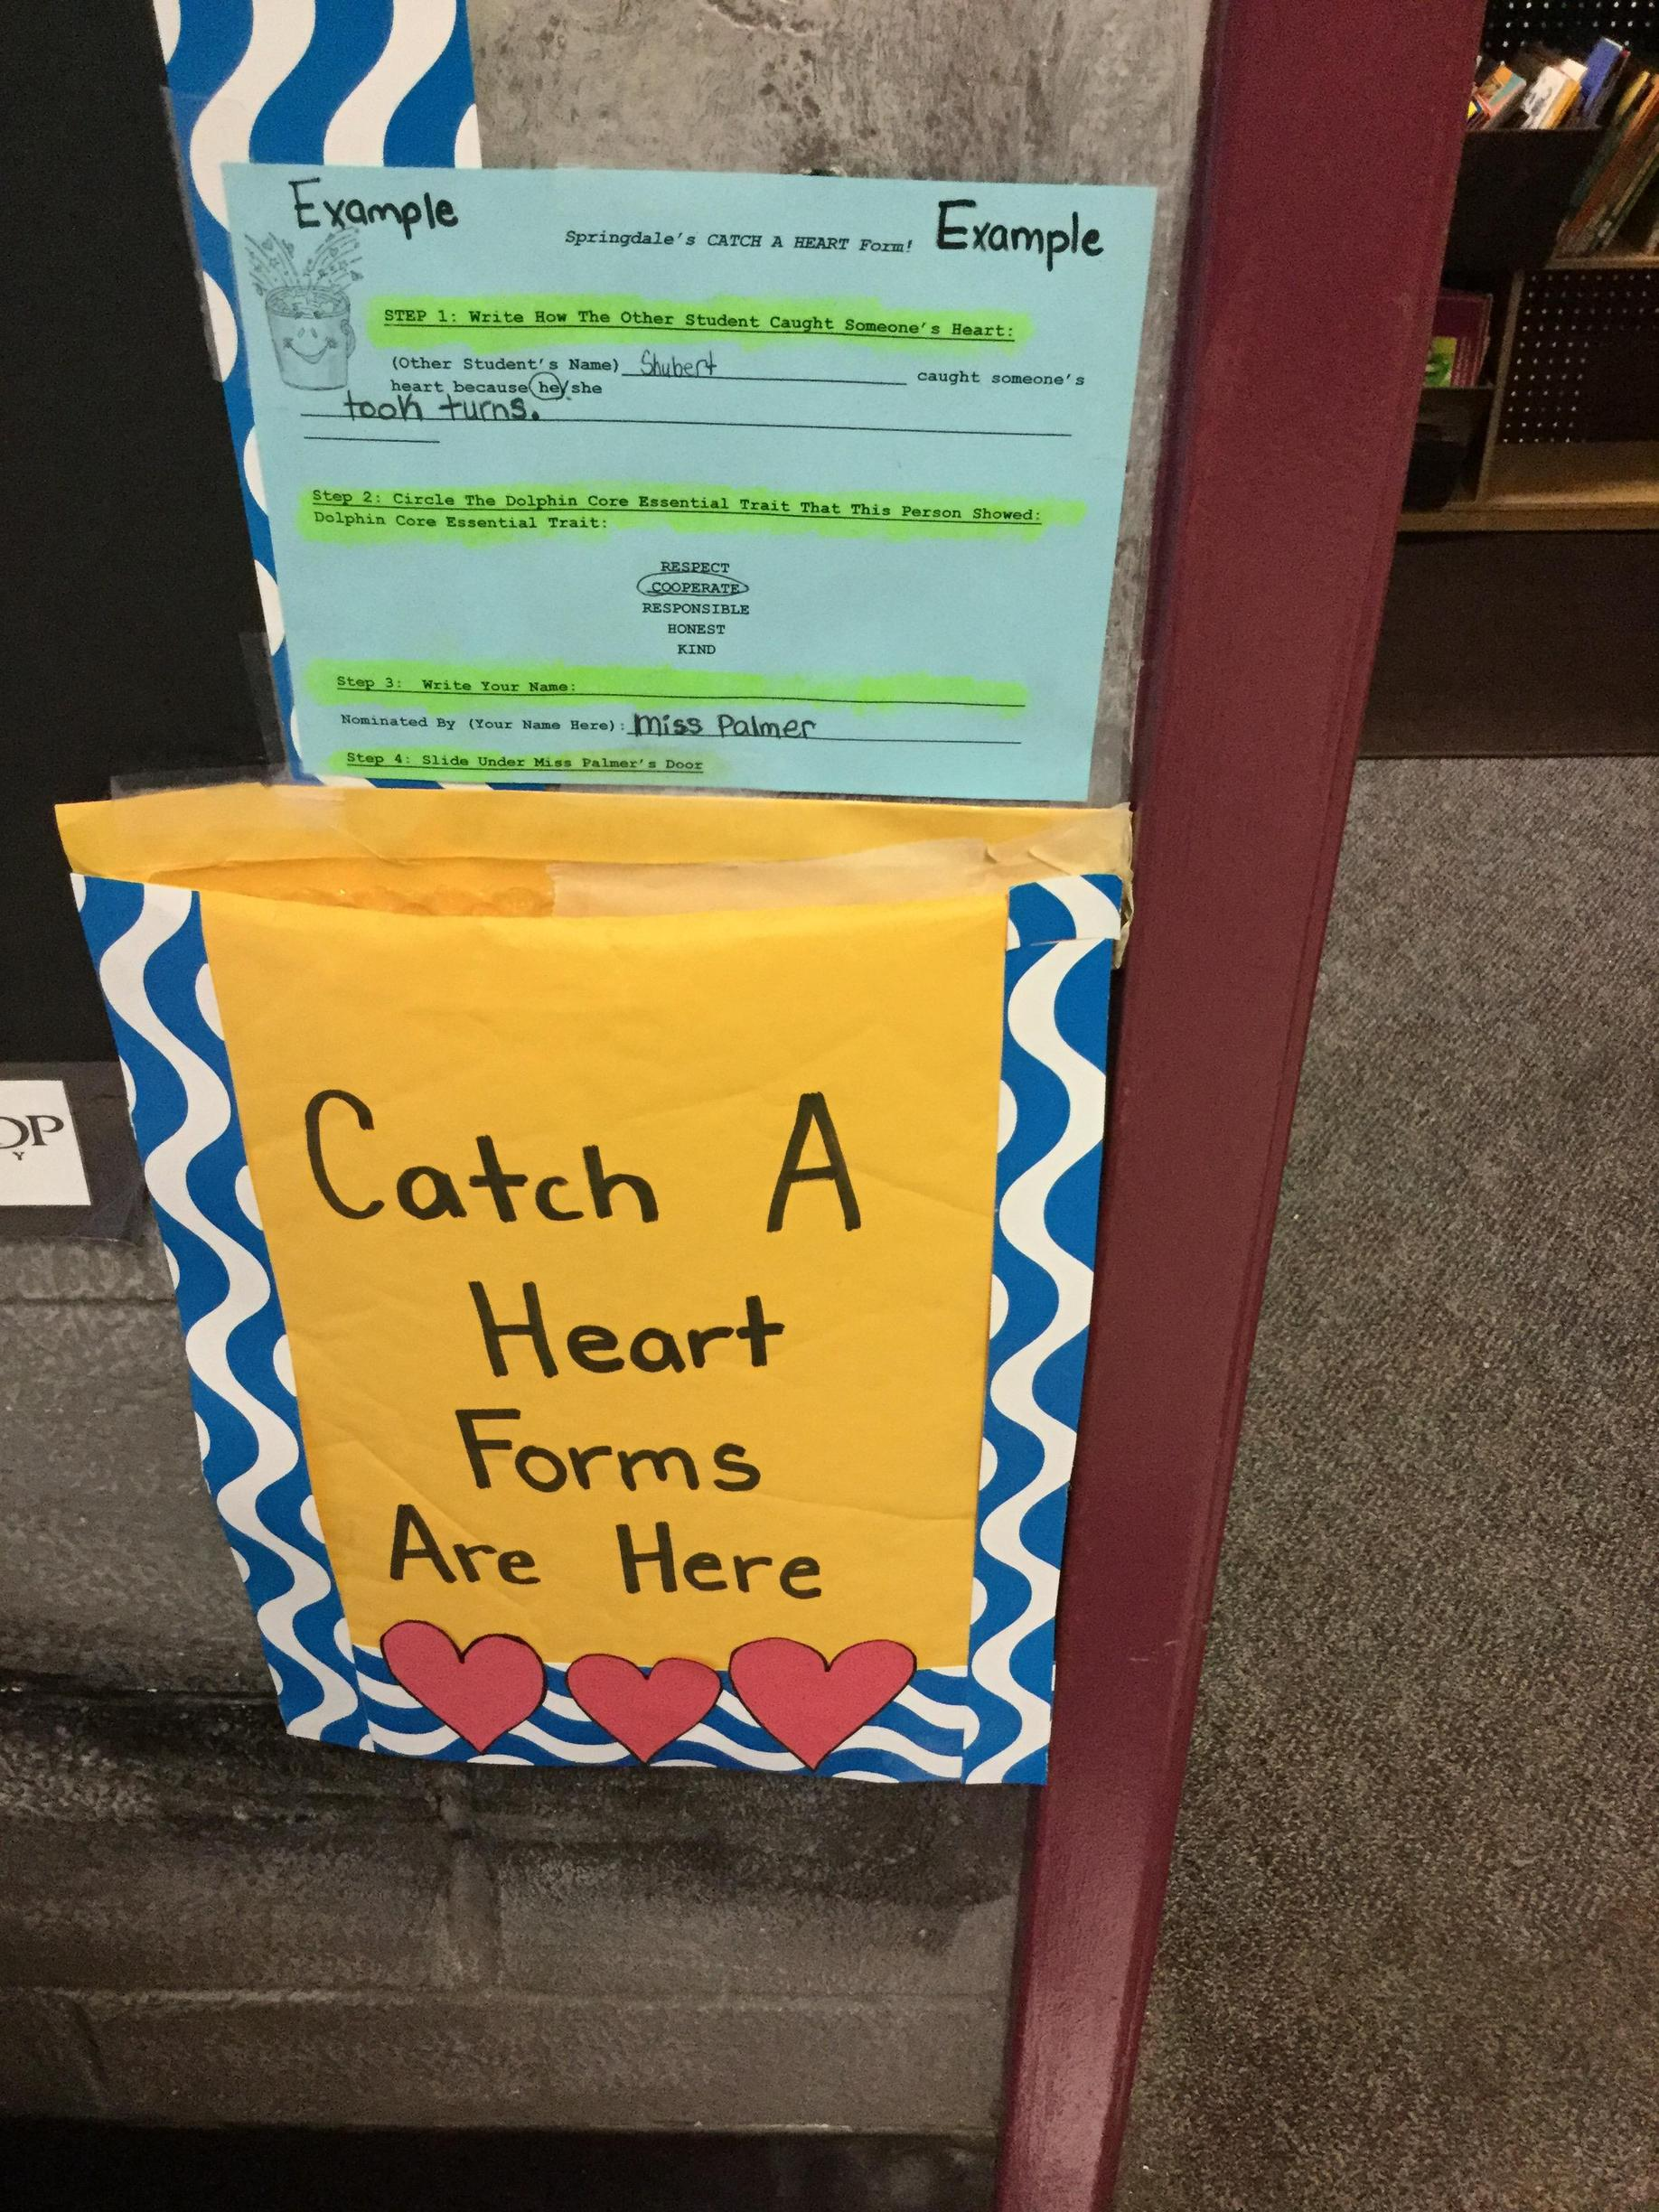 Catch A Heart